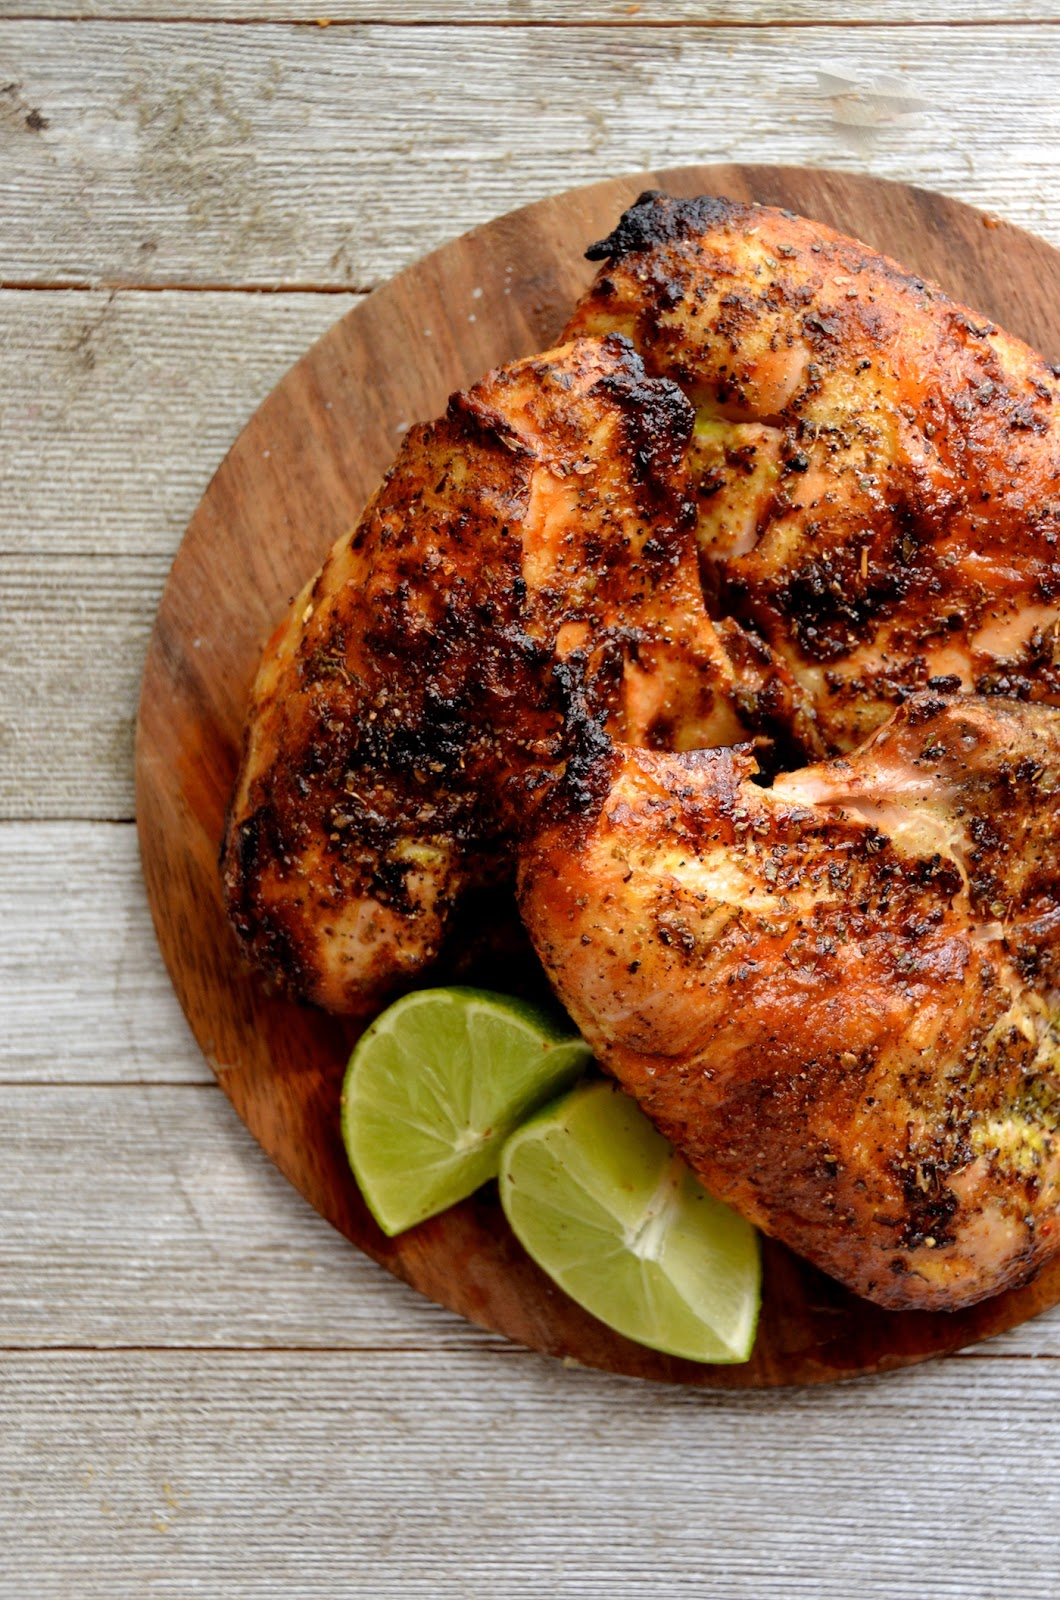 Buy The Chicken And Marinade Ingredients Prep It All Again This Takes Minutes Then Pop In The Fridge For A Day Or Two Or Three To